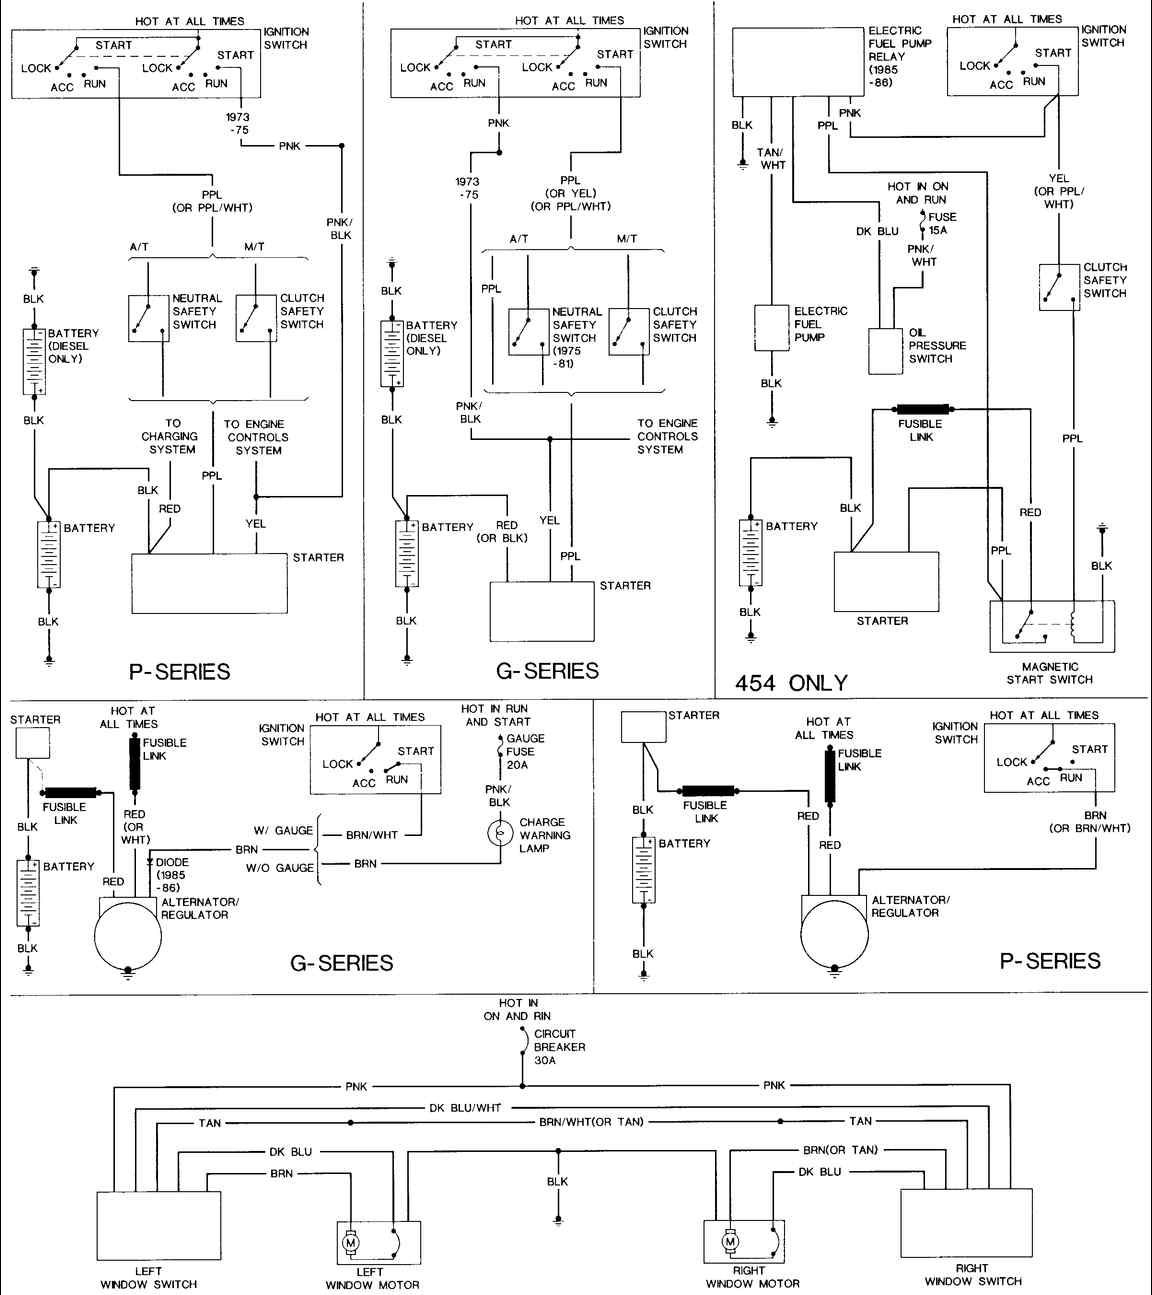 85 chevy truck wiring diagram 85 chevy van the steering column rh pinterest  com 2005 chevrolet express van wiring diagram chevy express van wiring  diagram